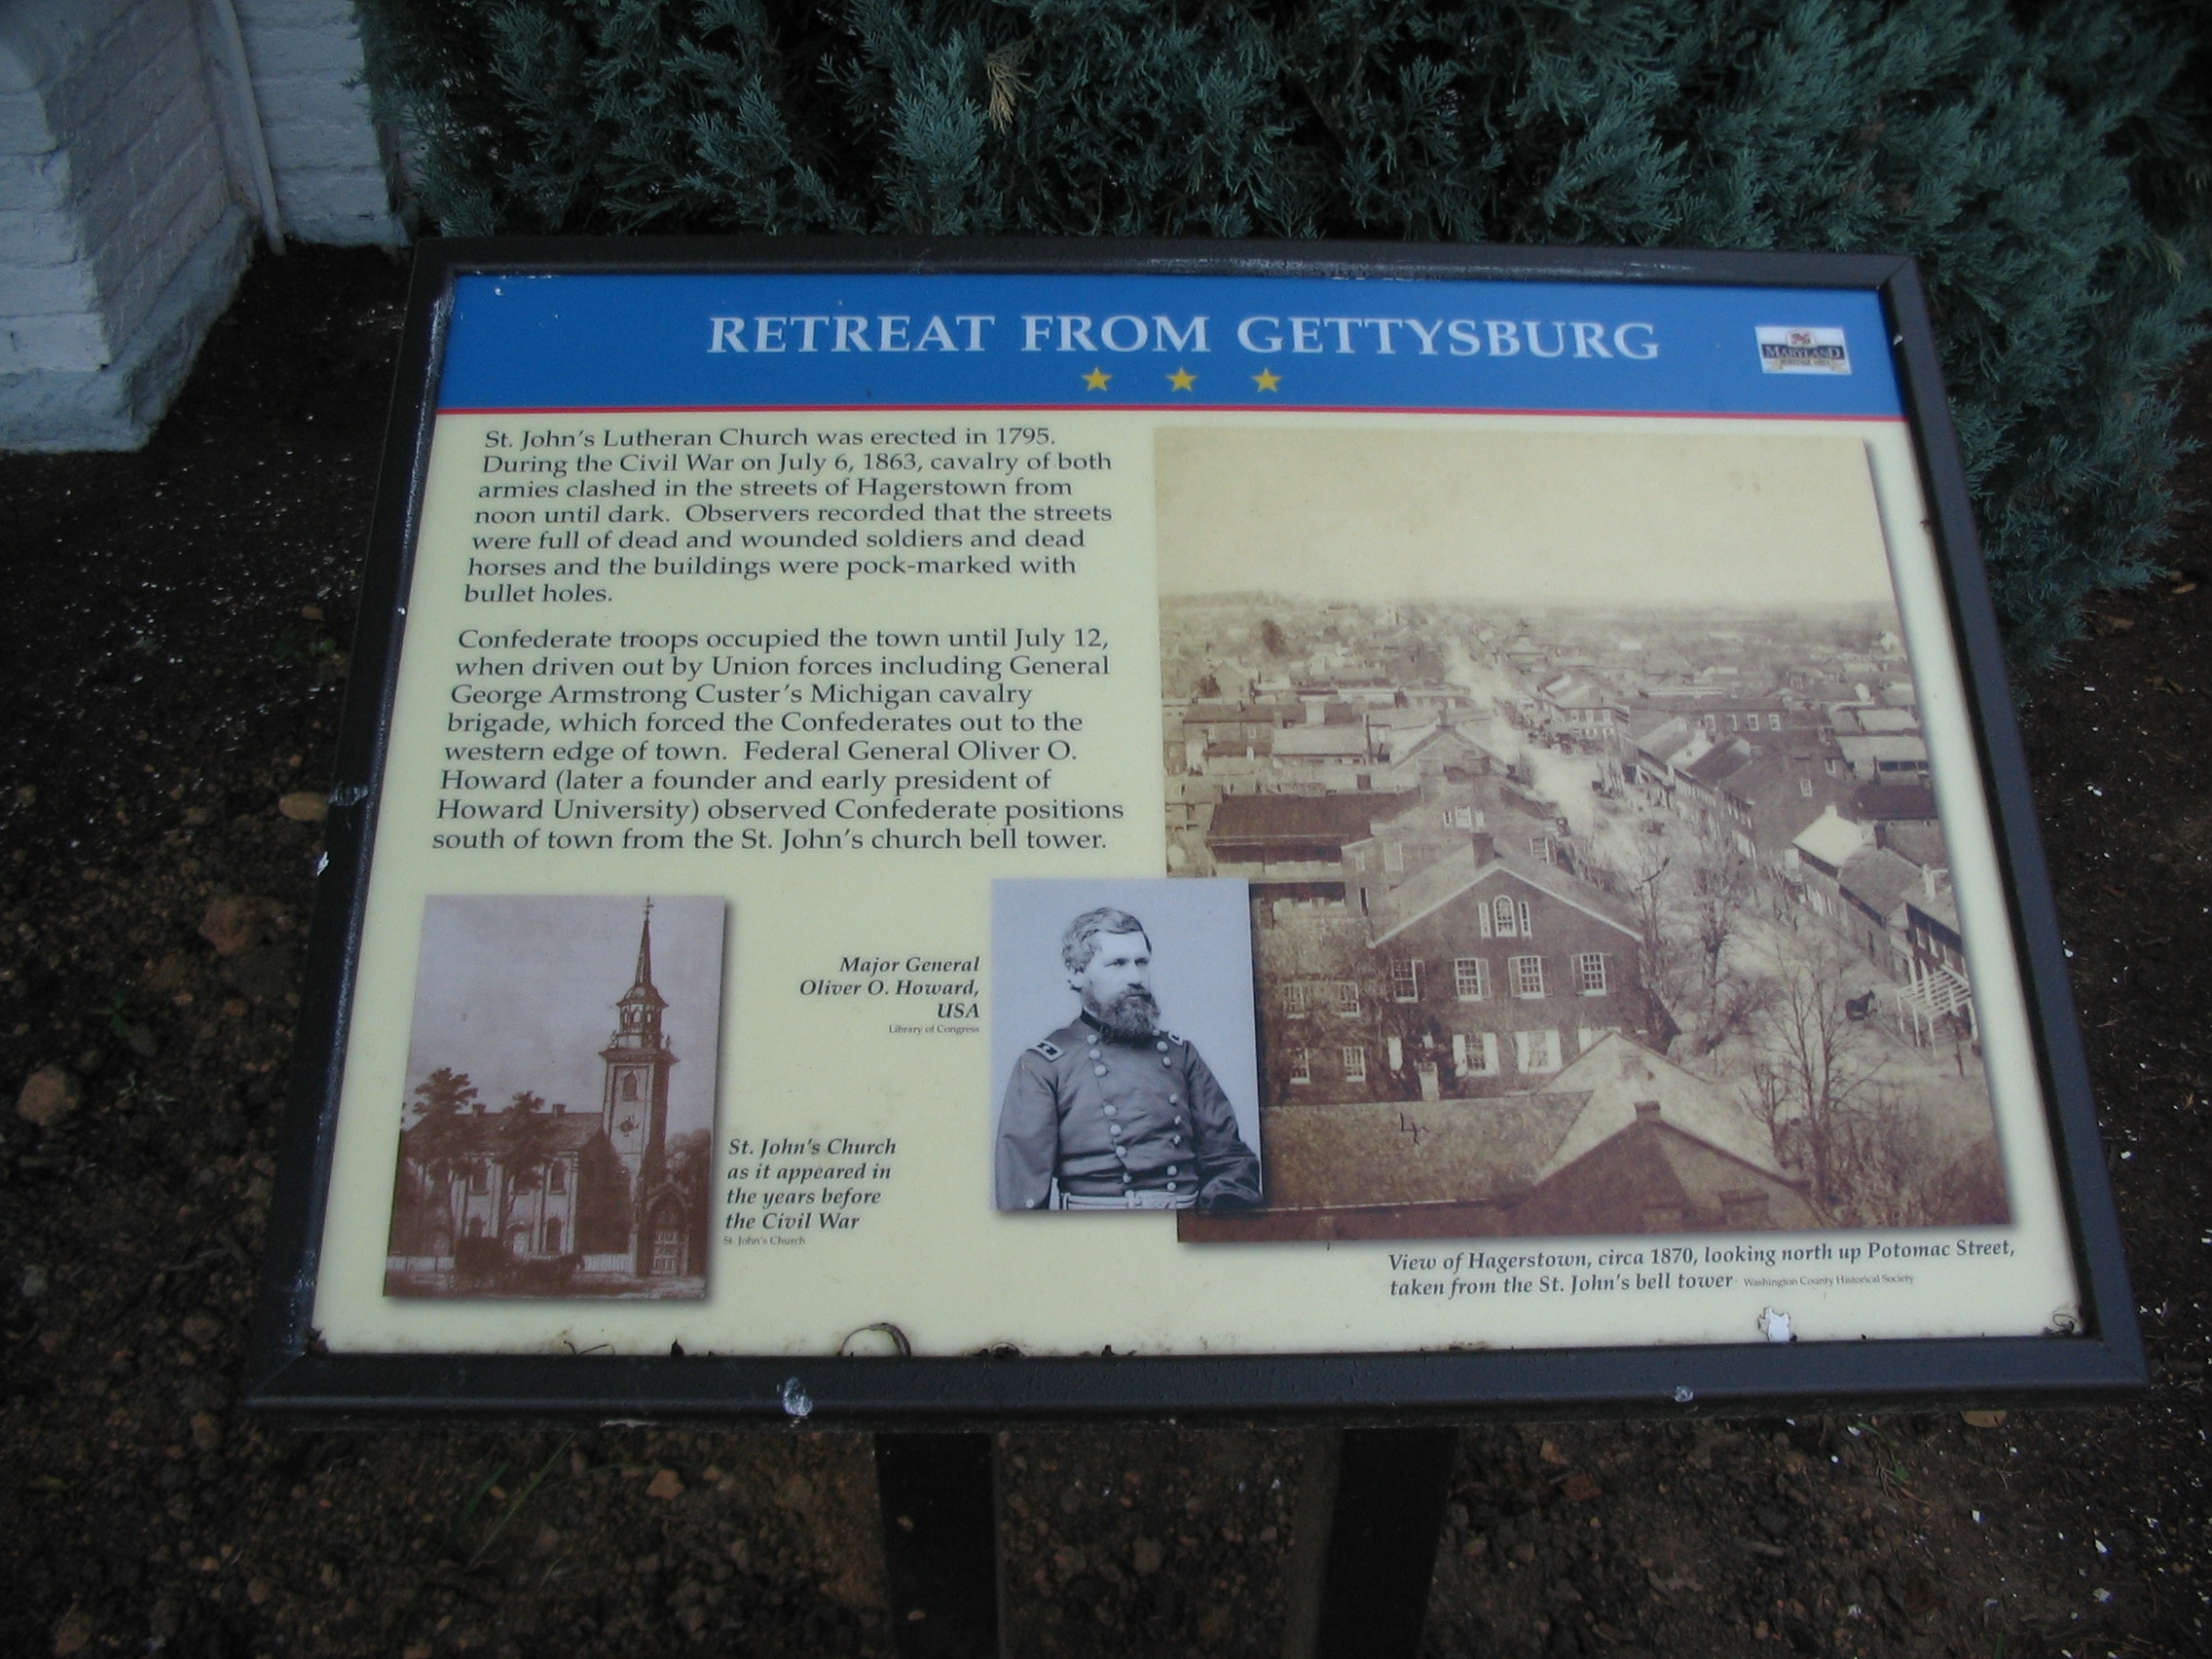 Retreat from Gettysburg Marker